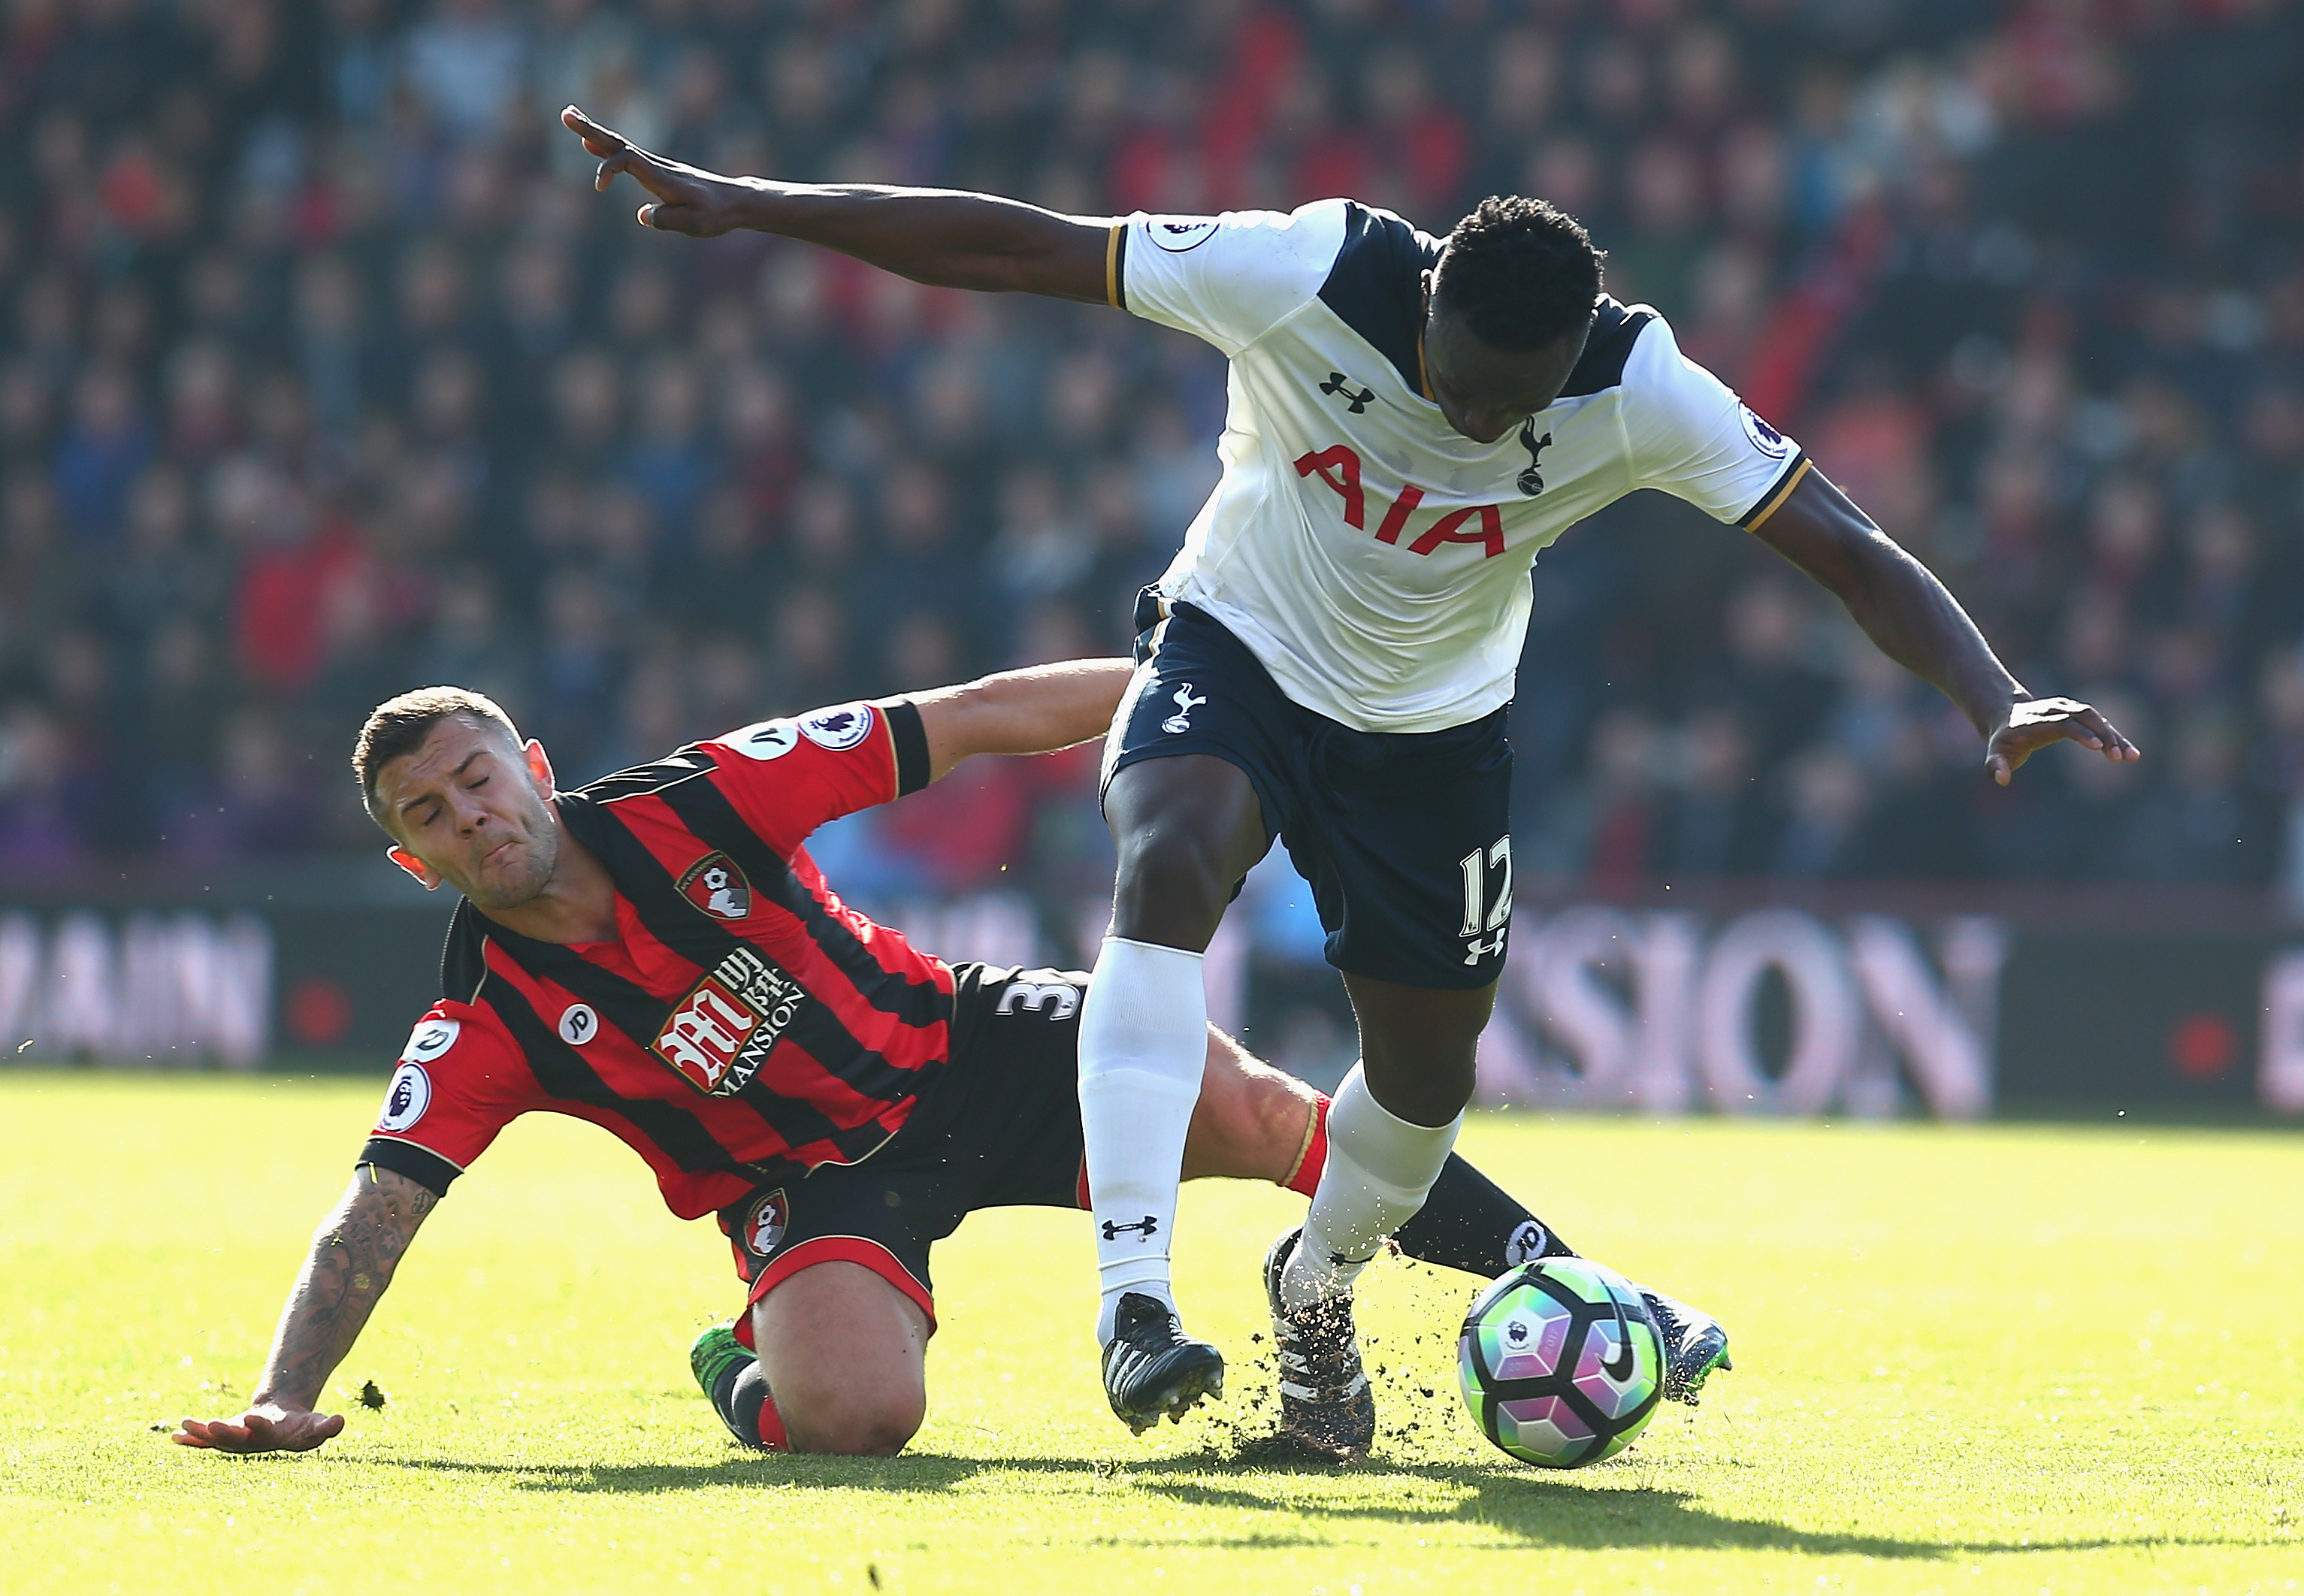 http://cdn.fansided.com/wp-content/uploads/getty-images/2016/10/616269788-afc-bournemouth-v-tottenham-hotspur-premier-league.jpg